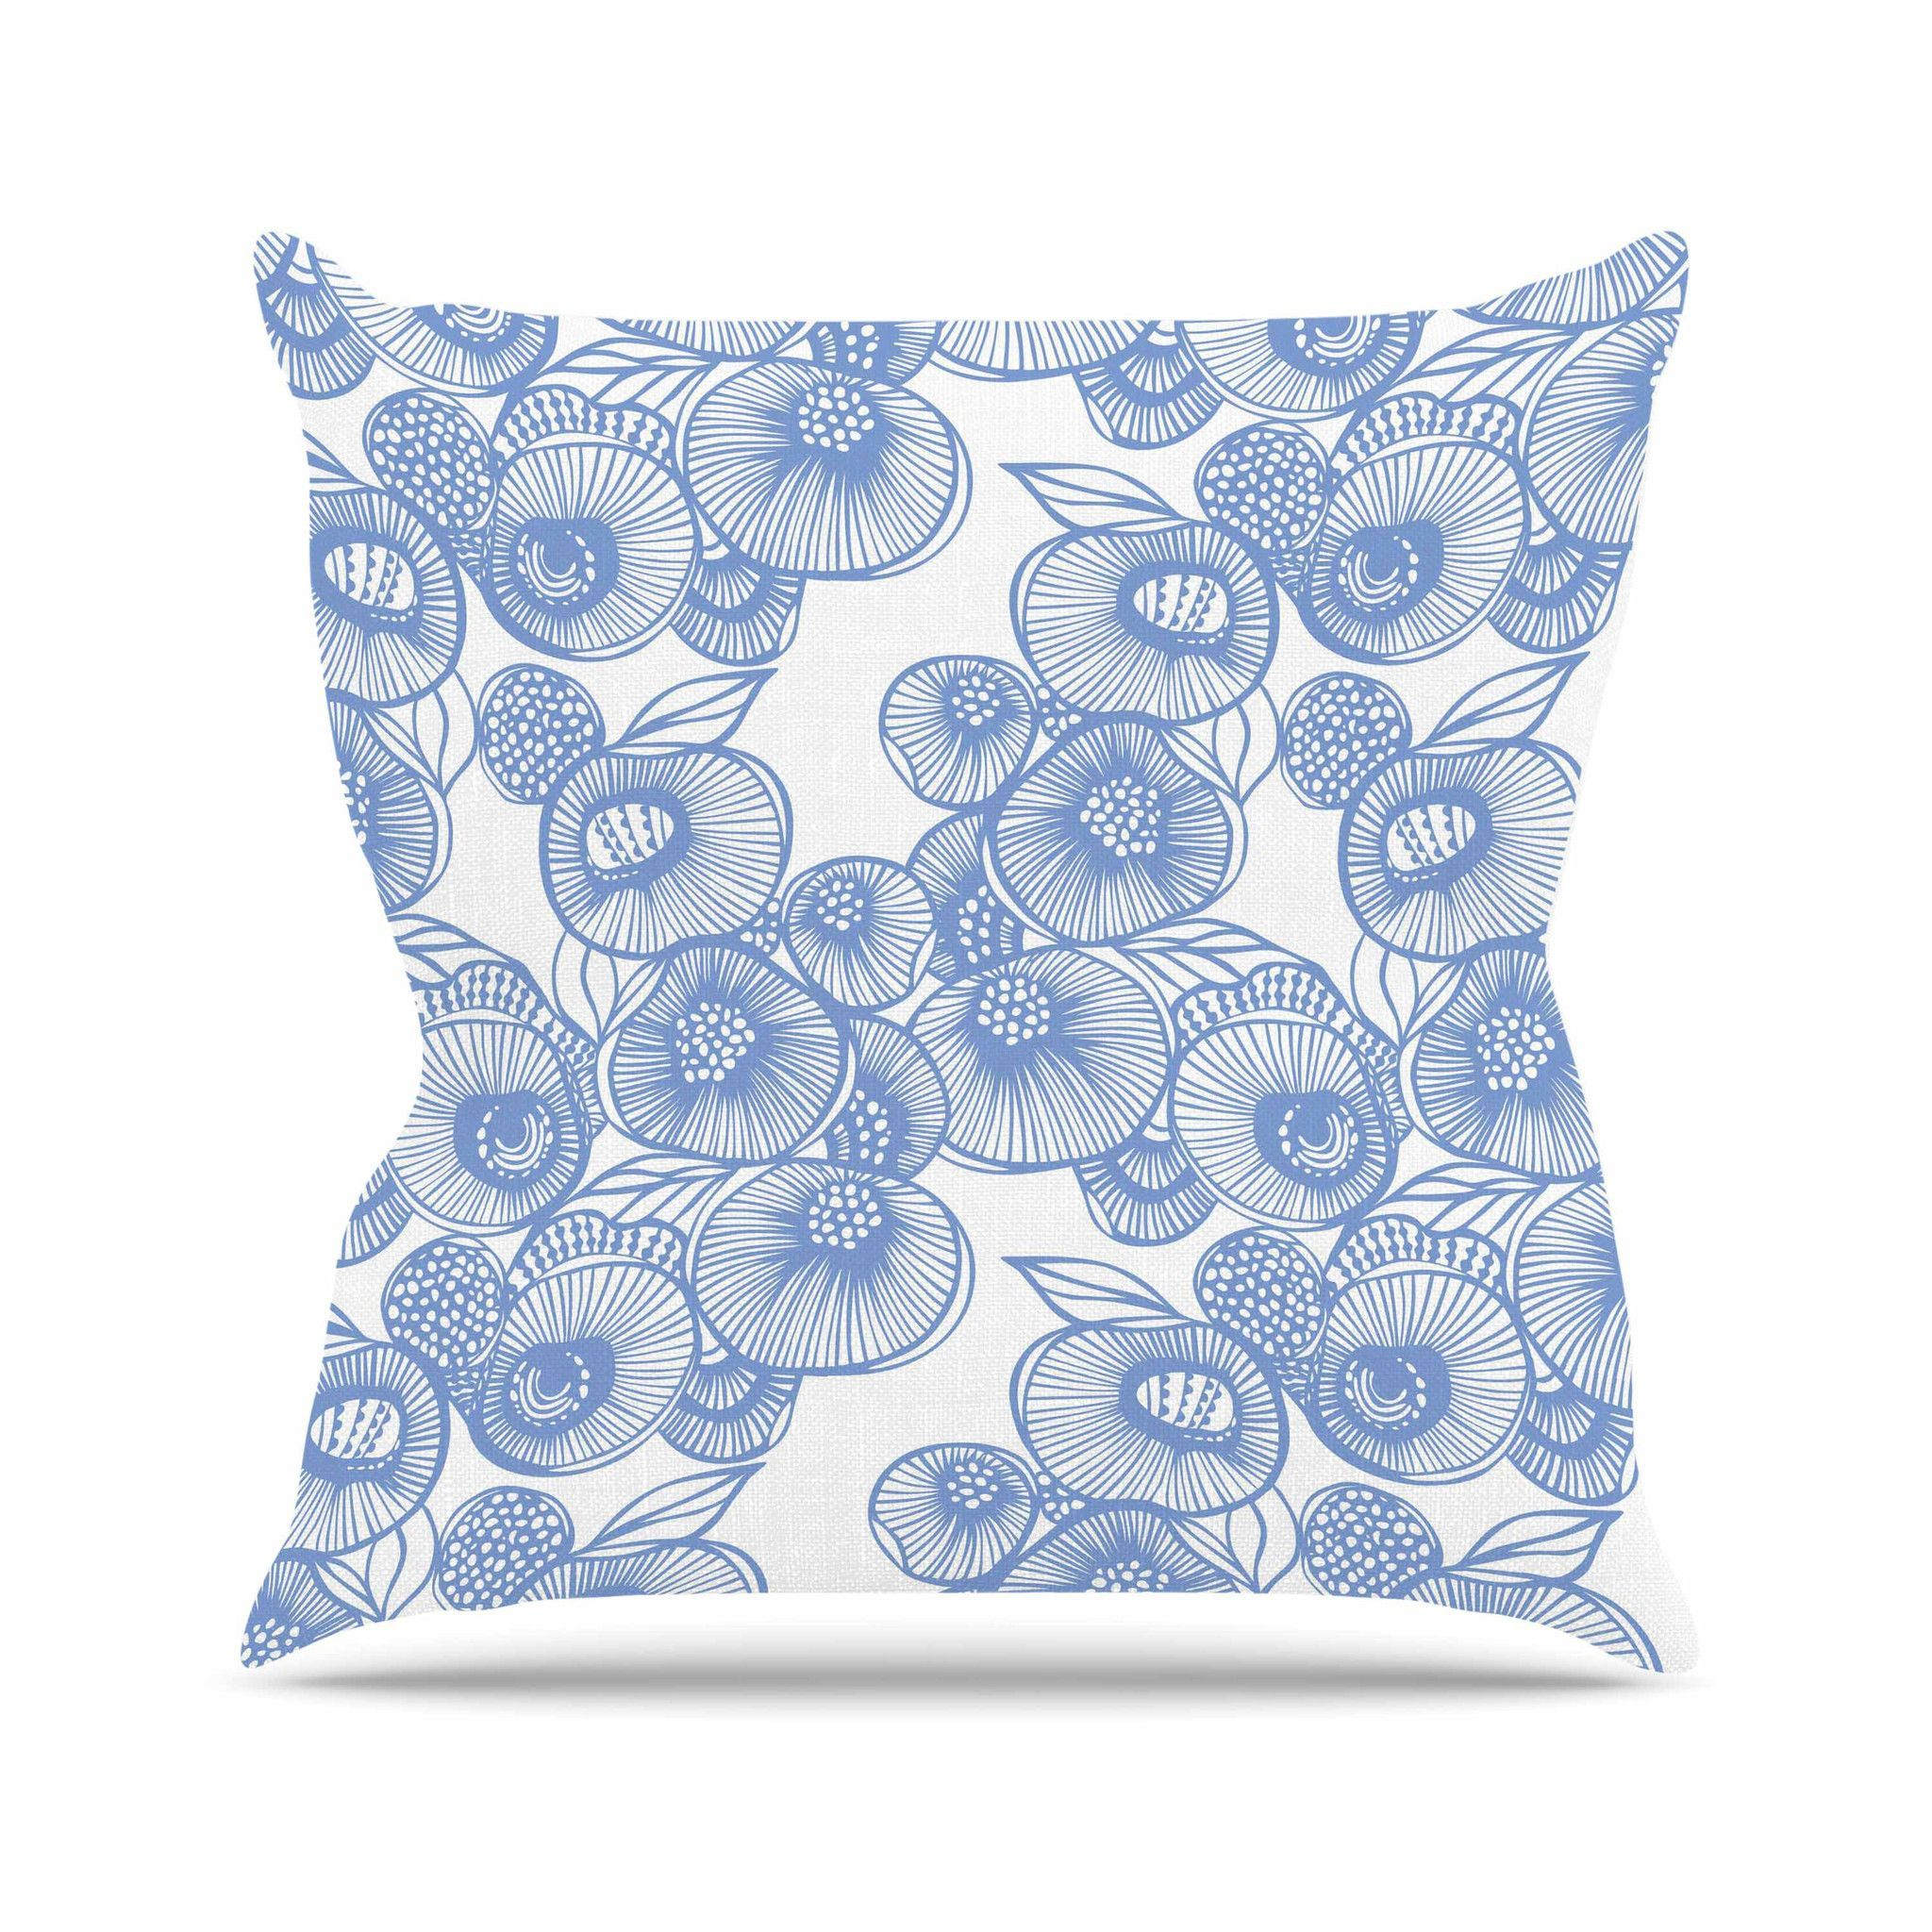 """Gill Eggleston """"Fenella Floral"""" Blue White Throw Pillow 